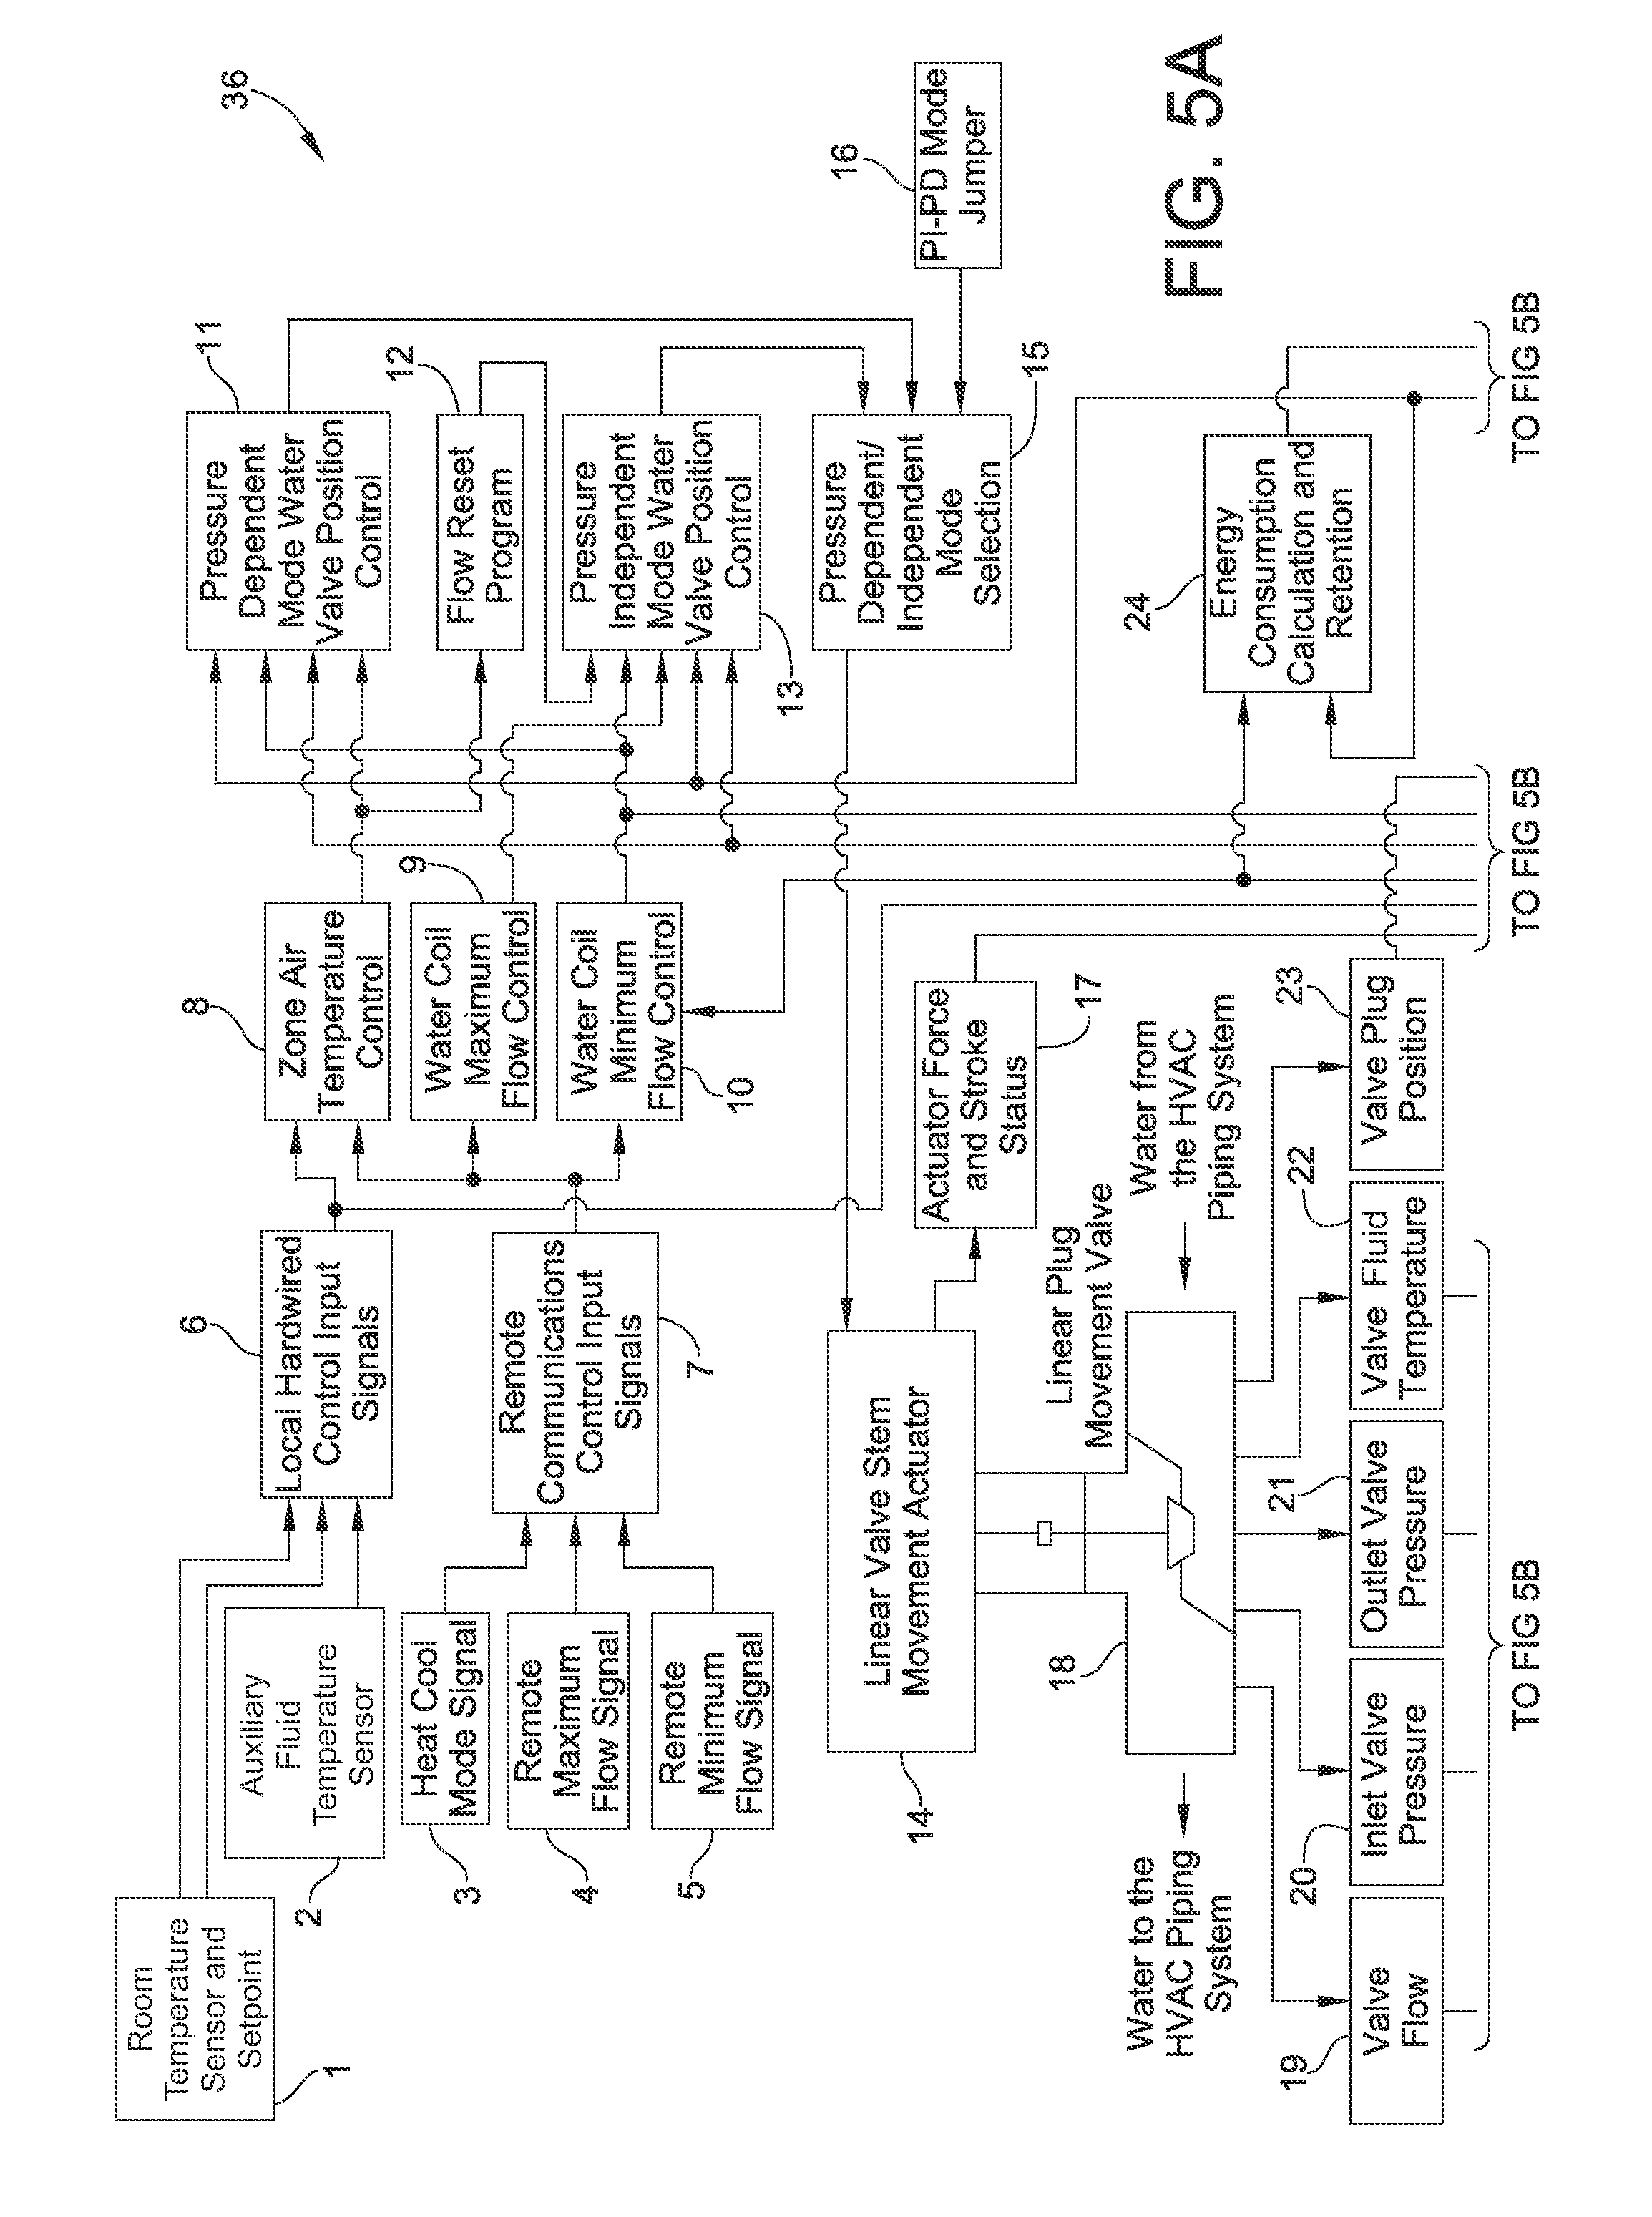 Potentiometer Wiring Diagram Vfd, Potentiometer, Free ...